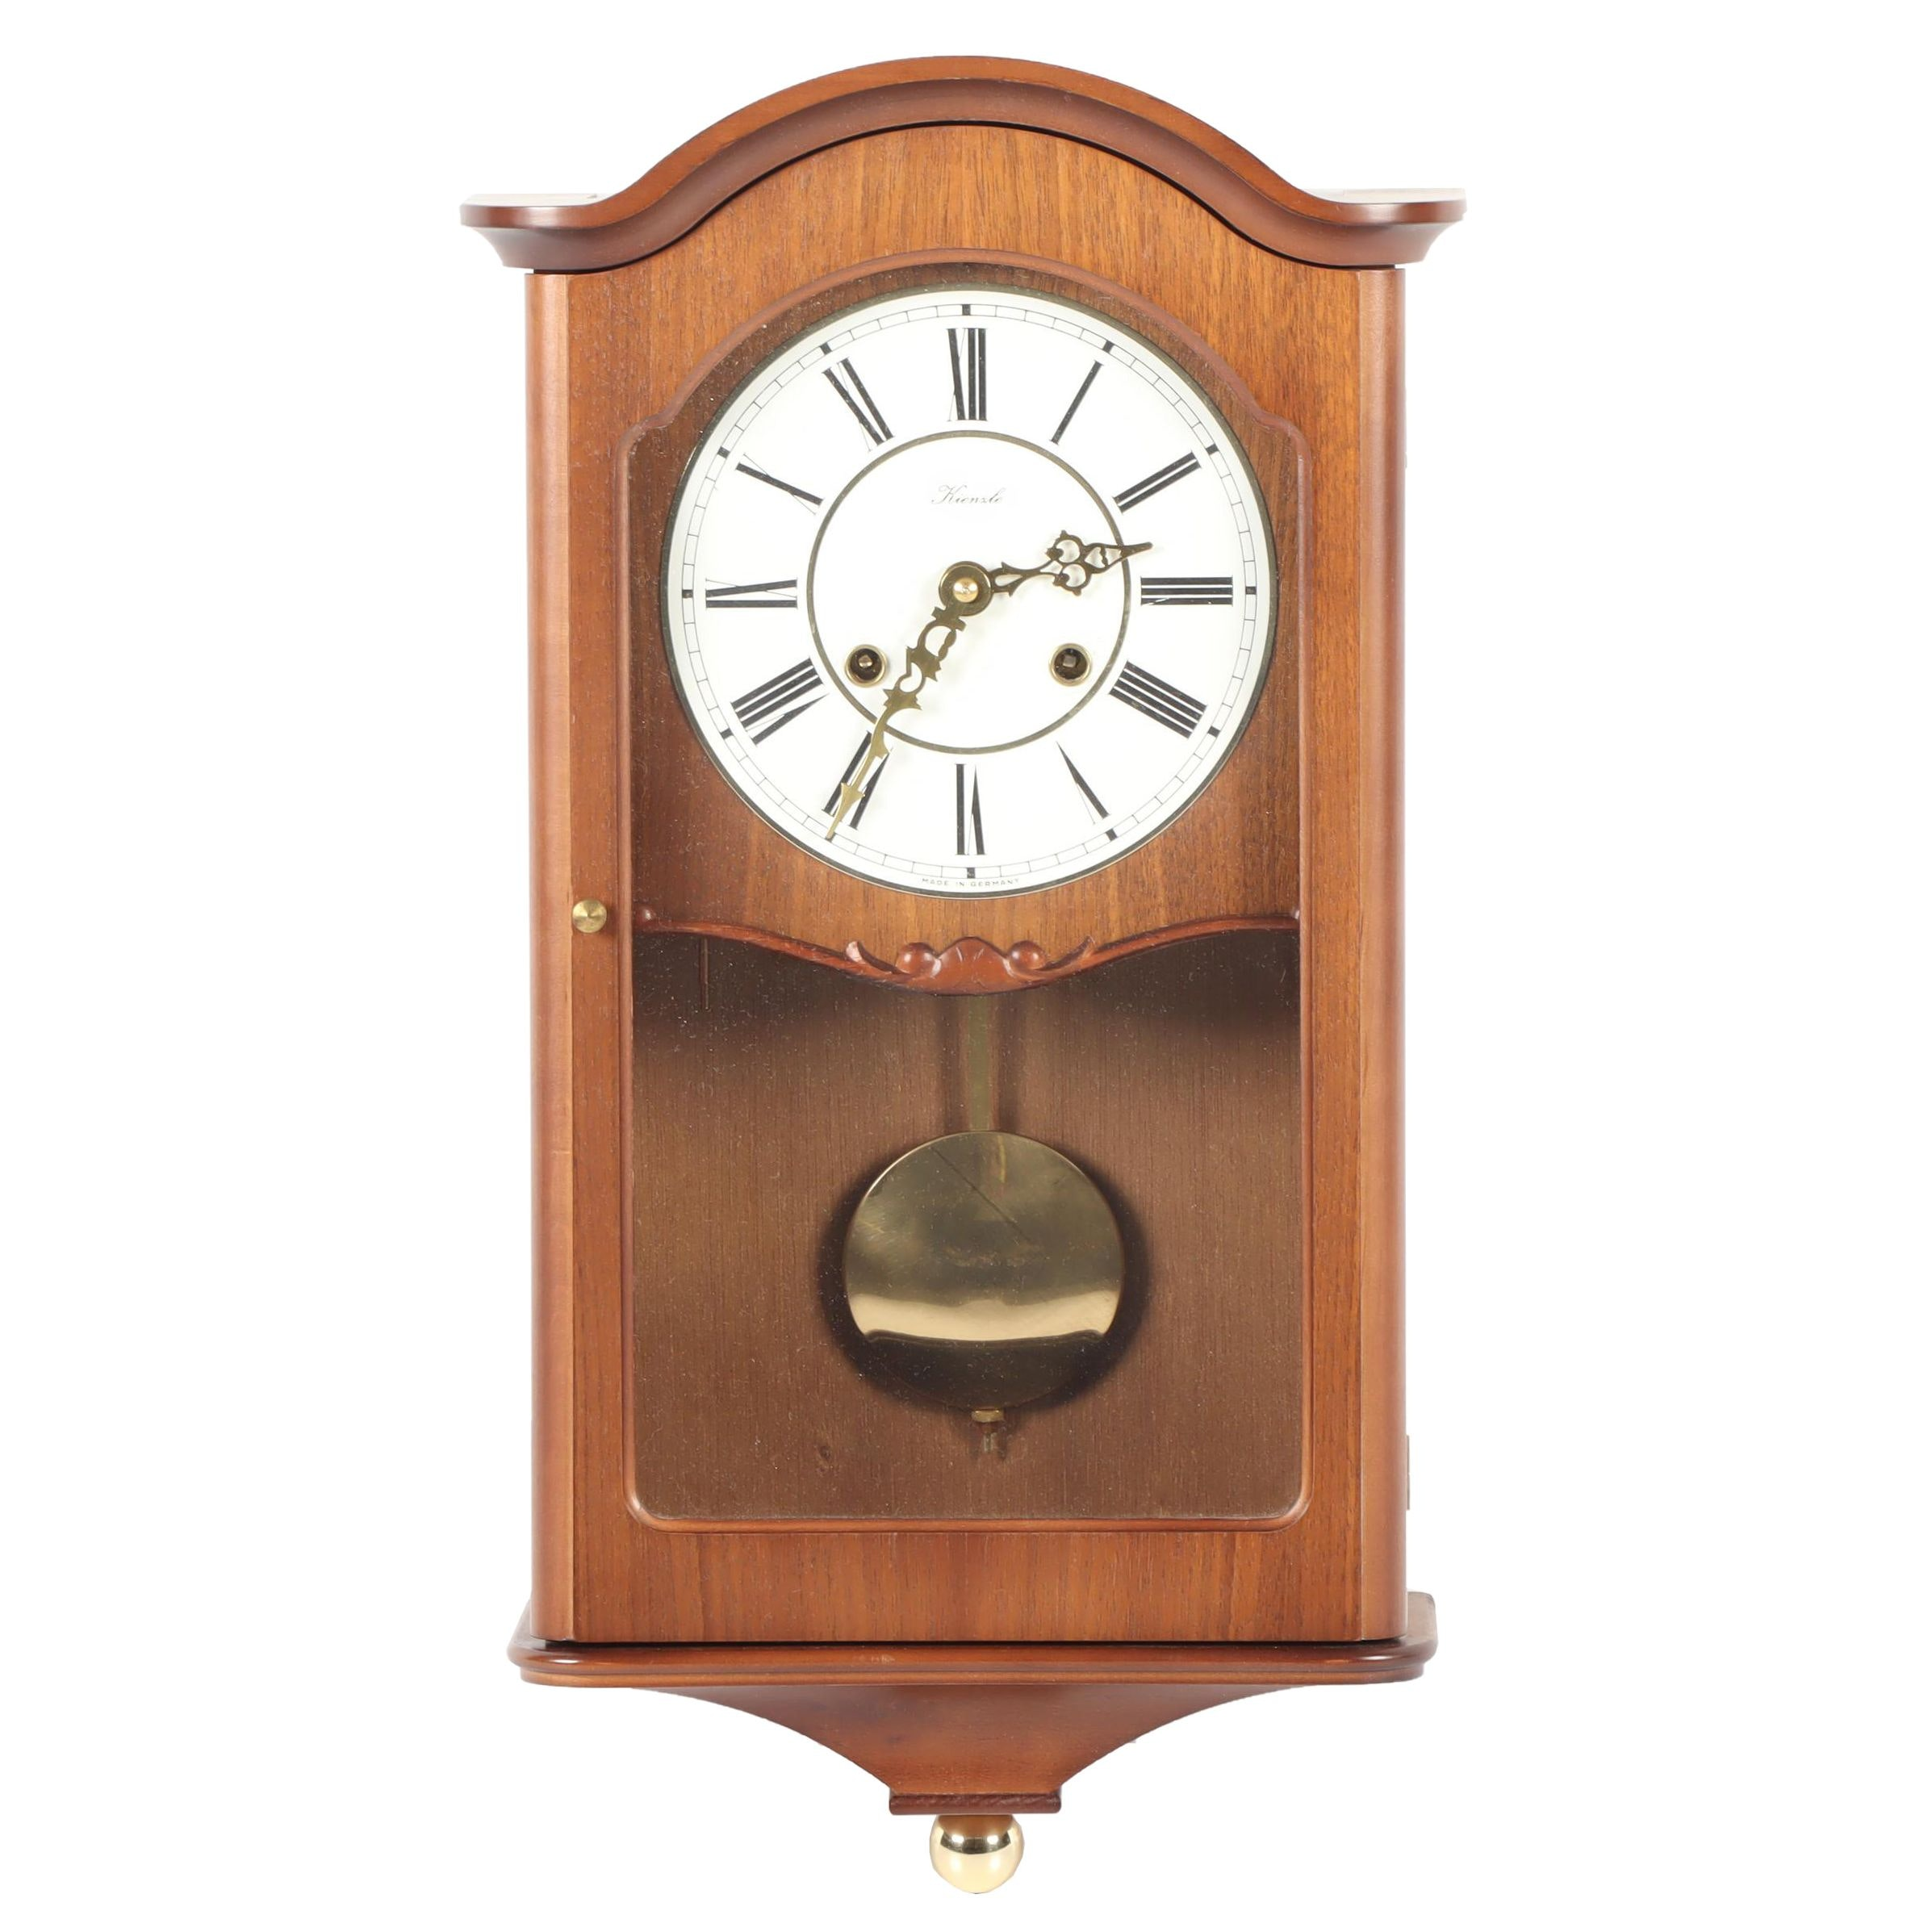 German Kienzle Pendulum Wall Clock, Mid to Late 20th Century